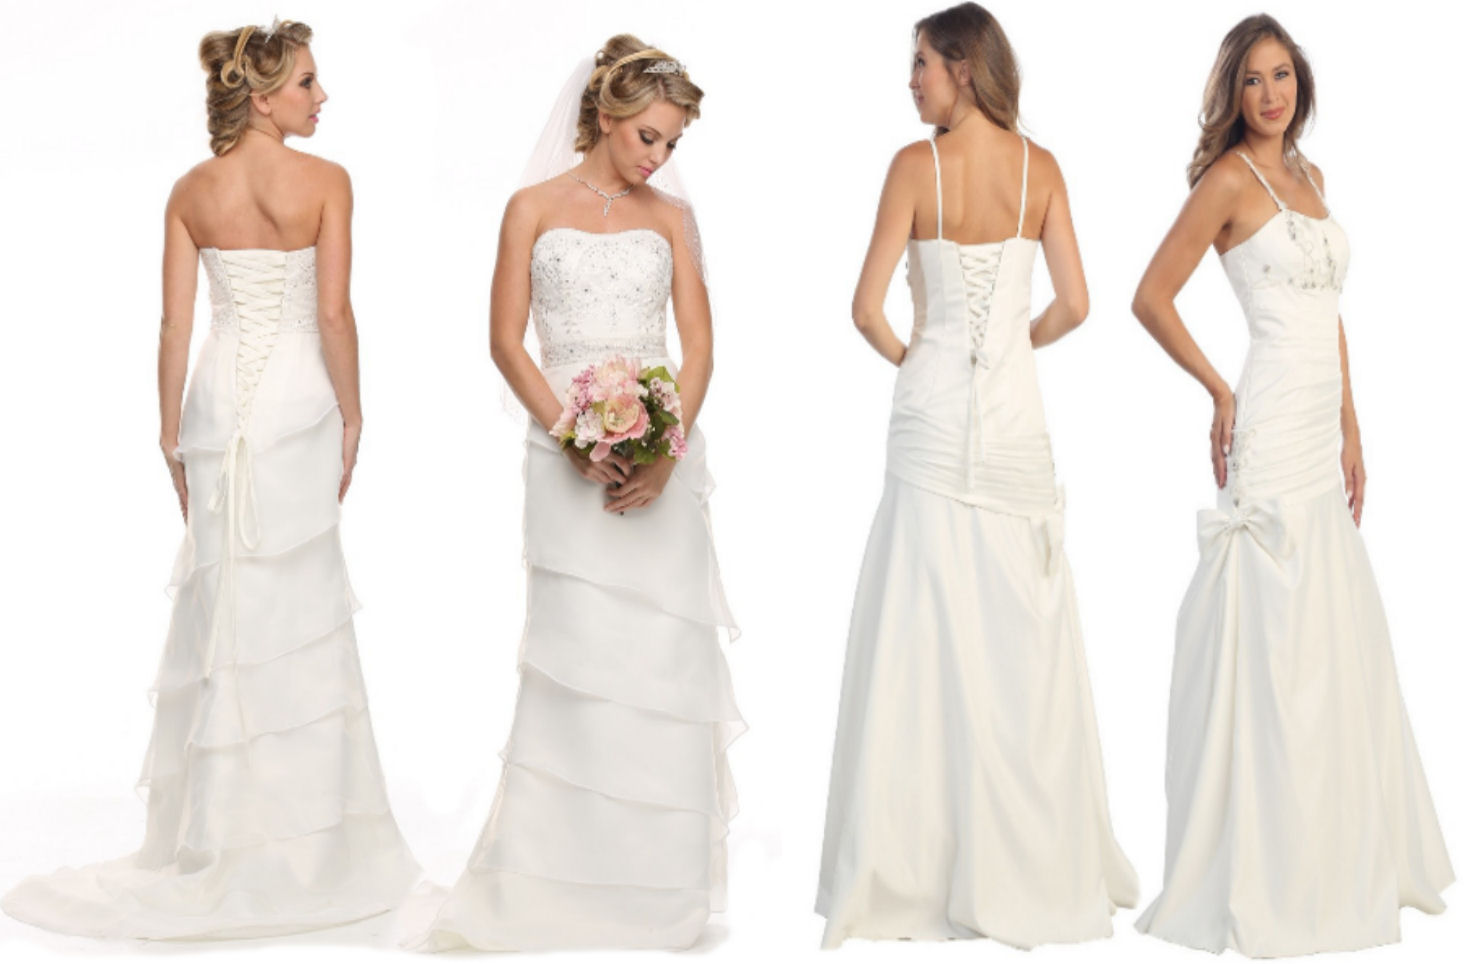 Wedding gowns alteration chic sport tailor leominster for Wedding dress alterations prices